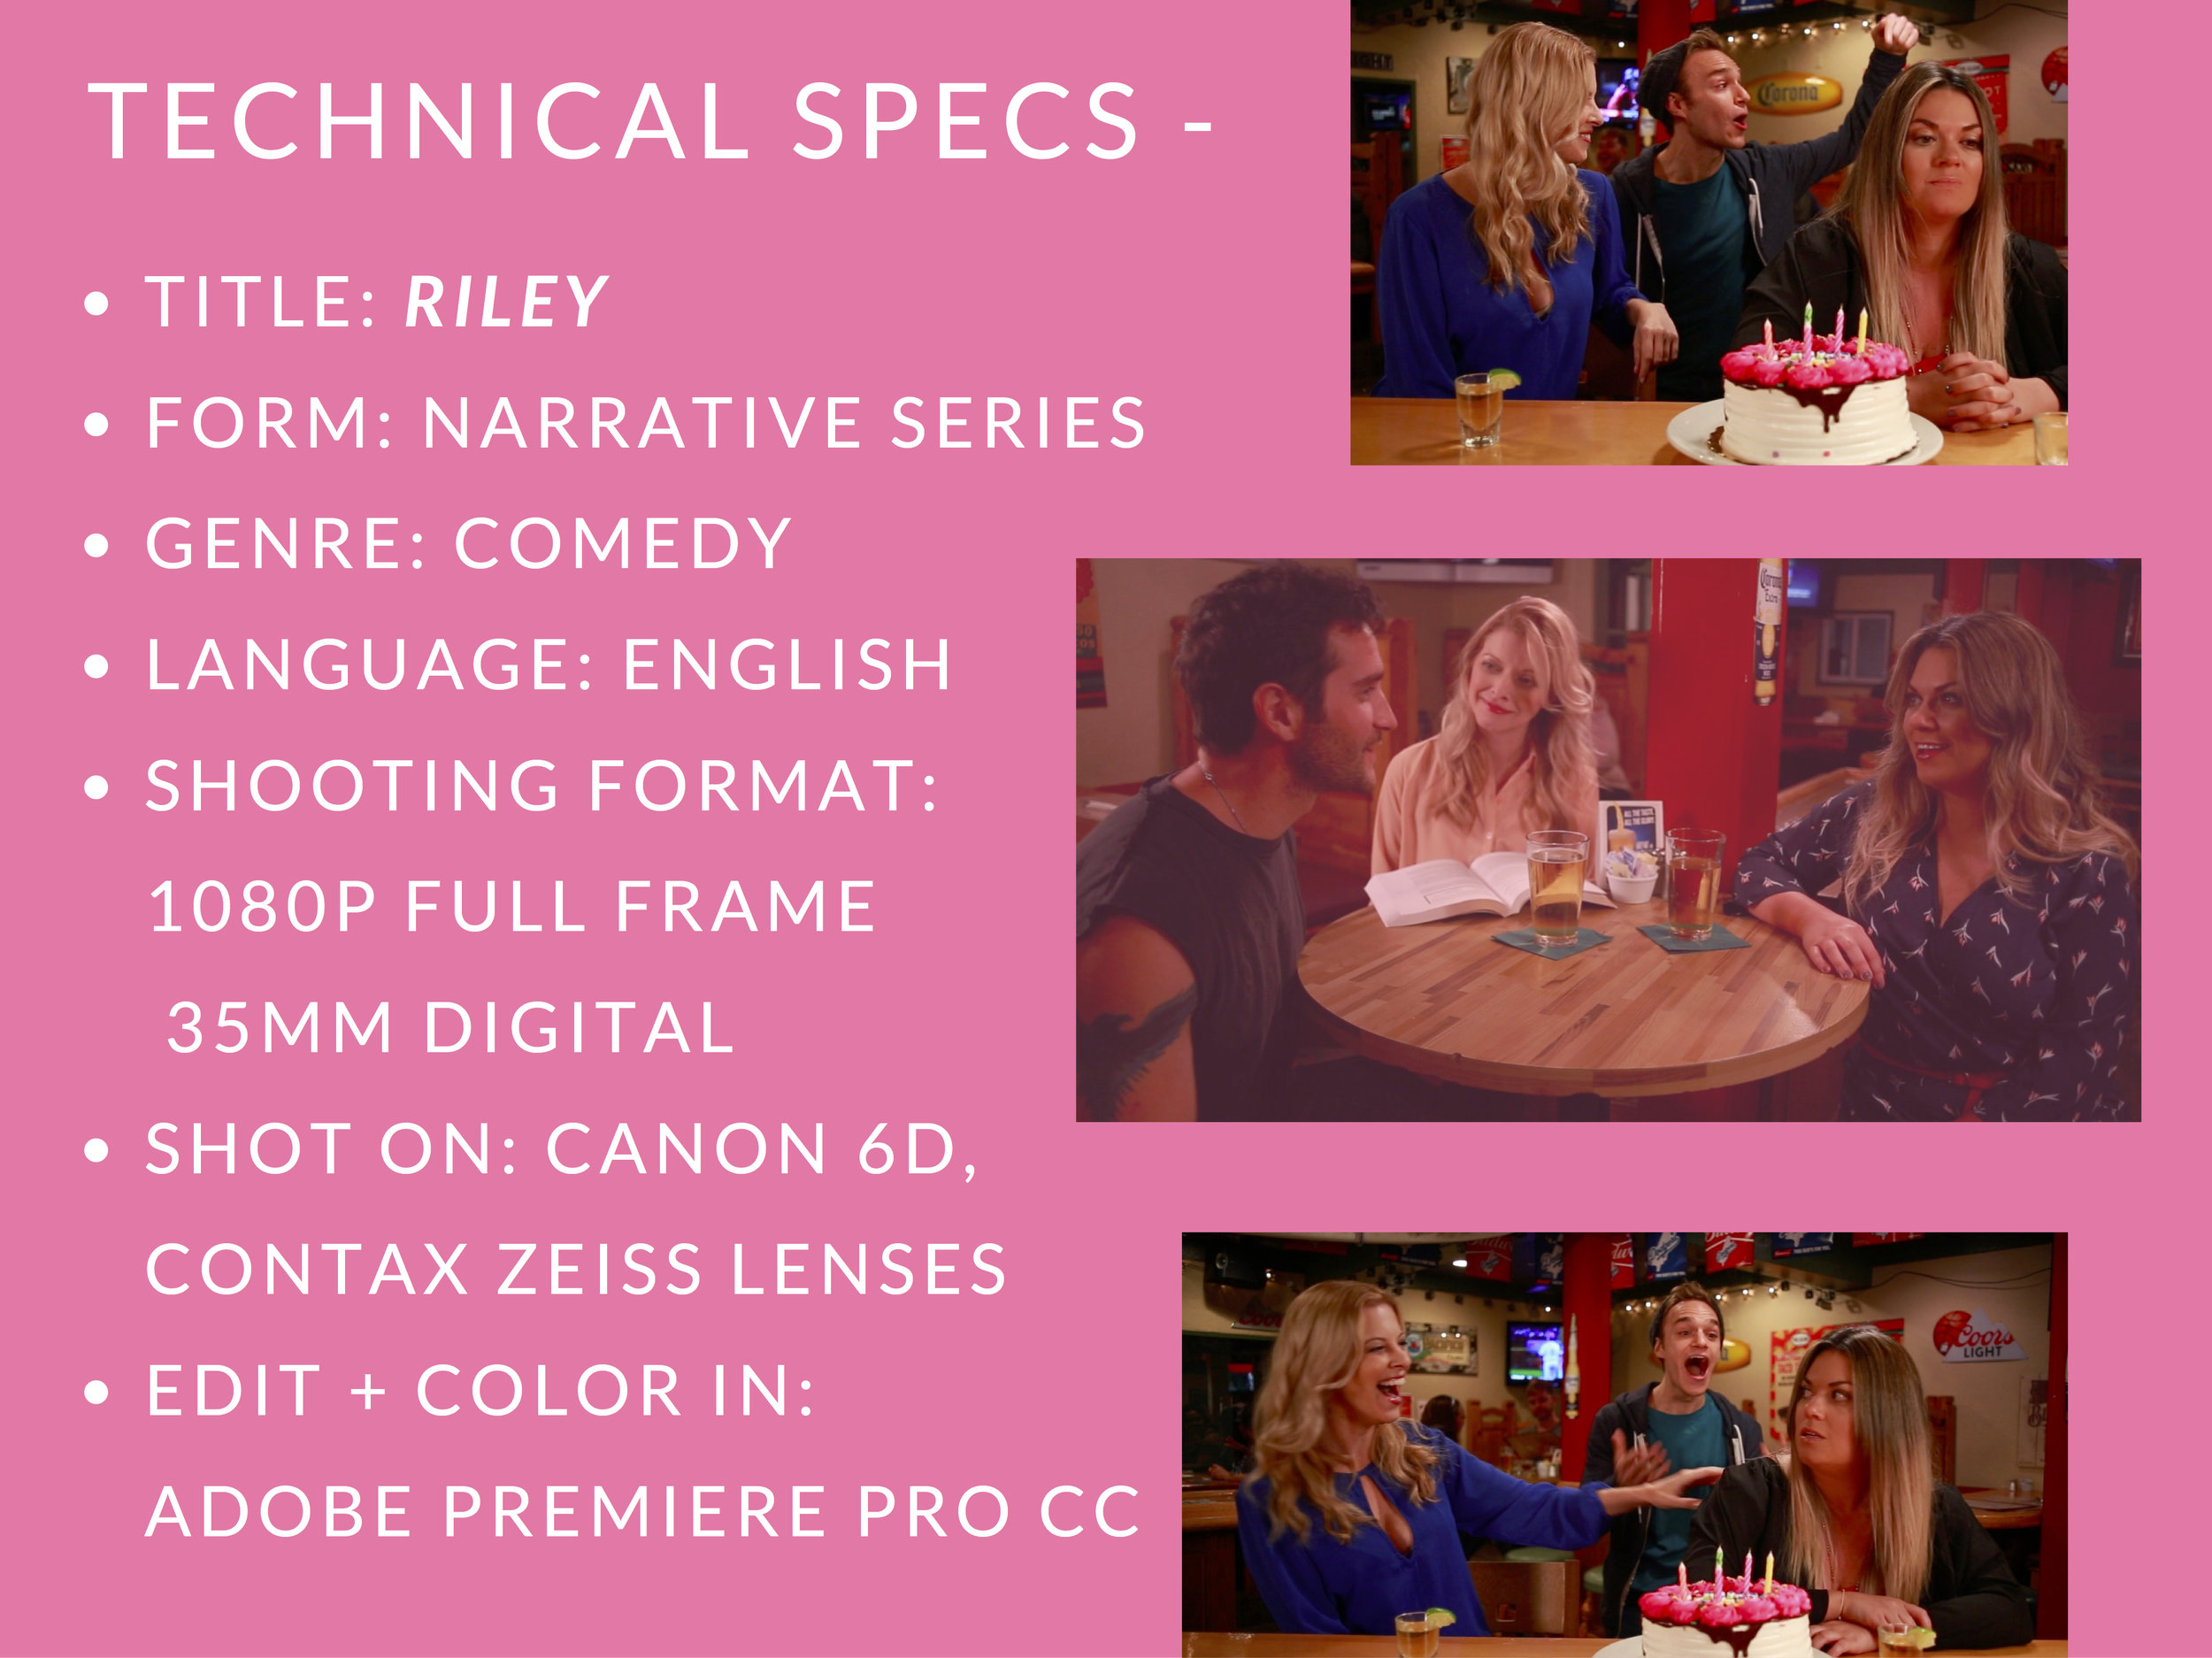 RILEY PRESS KIT - PAGE 13   (   technical specs   )  - CLICK FOR HIGH RES JPEG